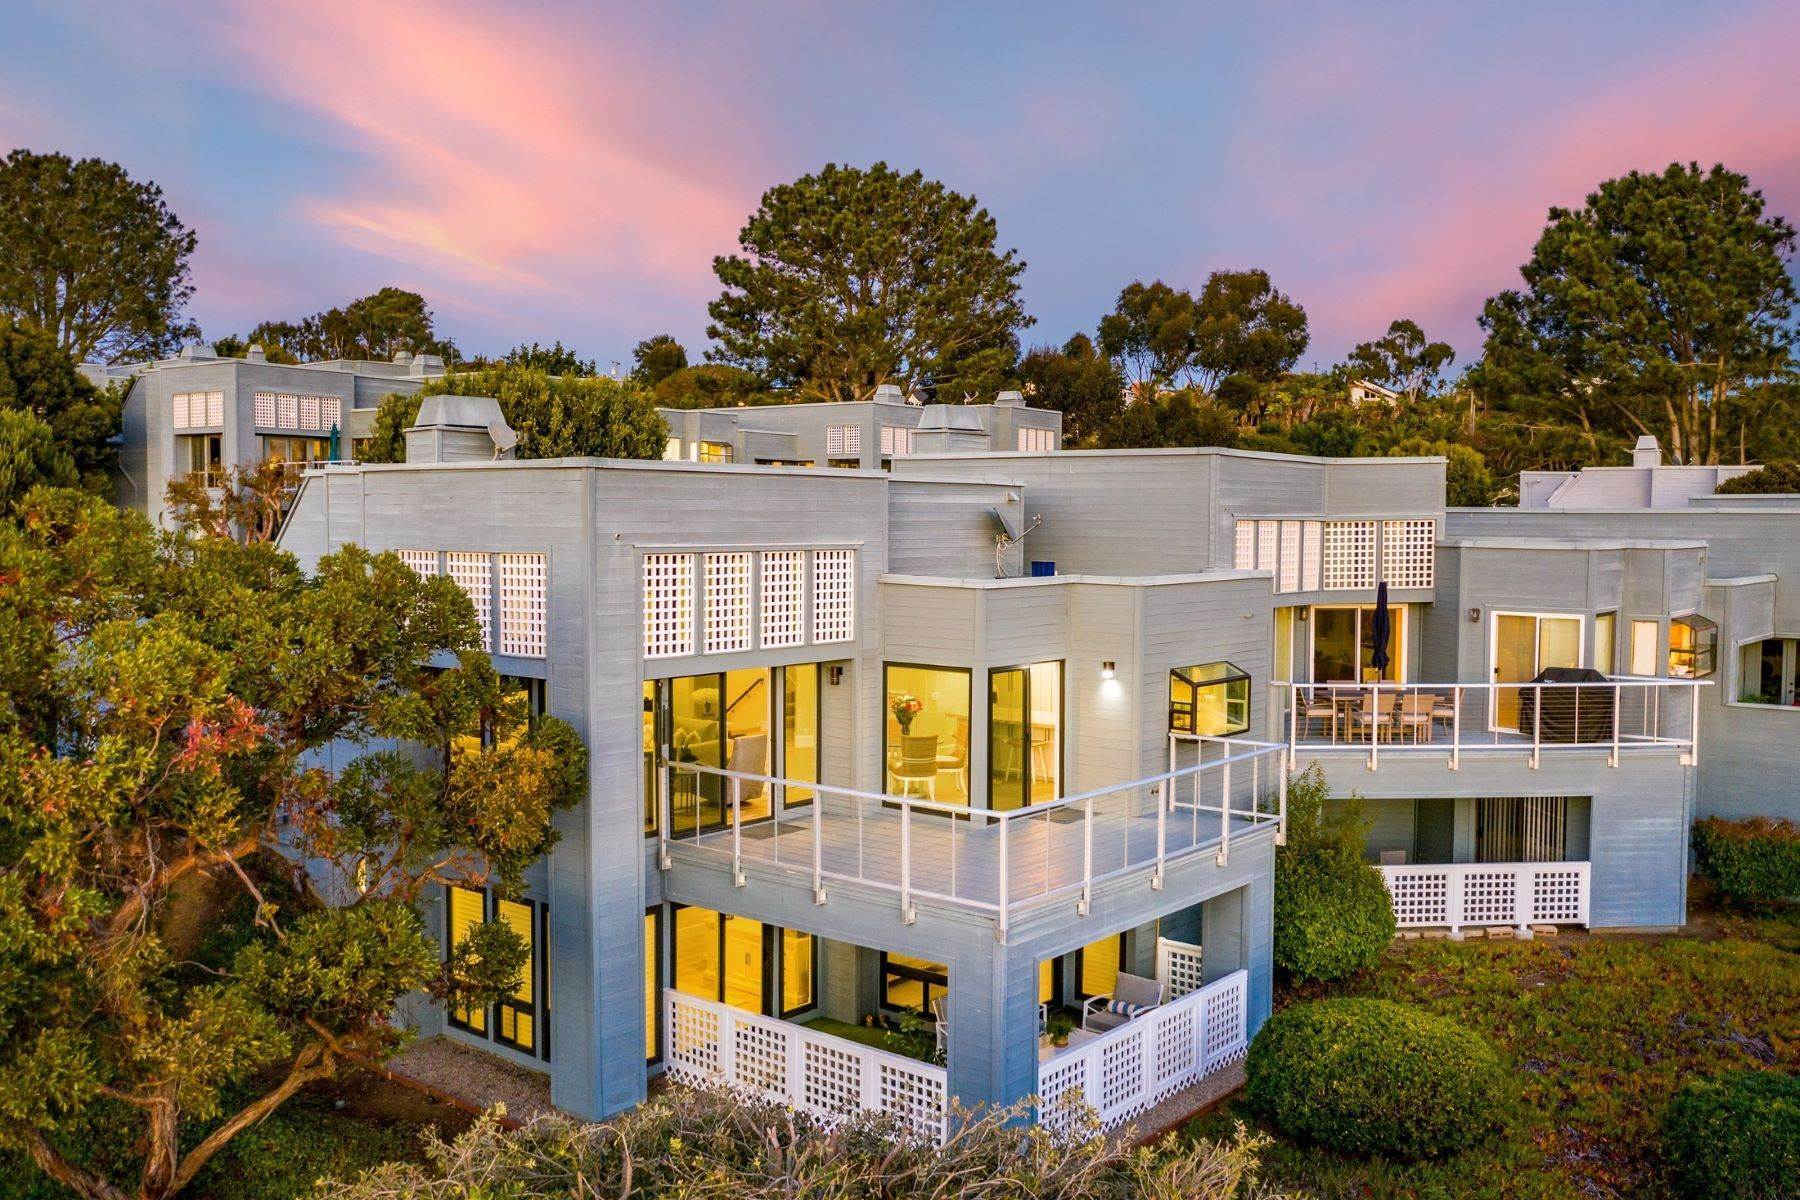 townhouses for Sale at 1023 Reliance Way, Del Mar, CA 92014 1023 Reliance Way Del Mar, California 92014 United States